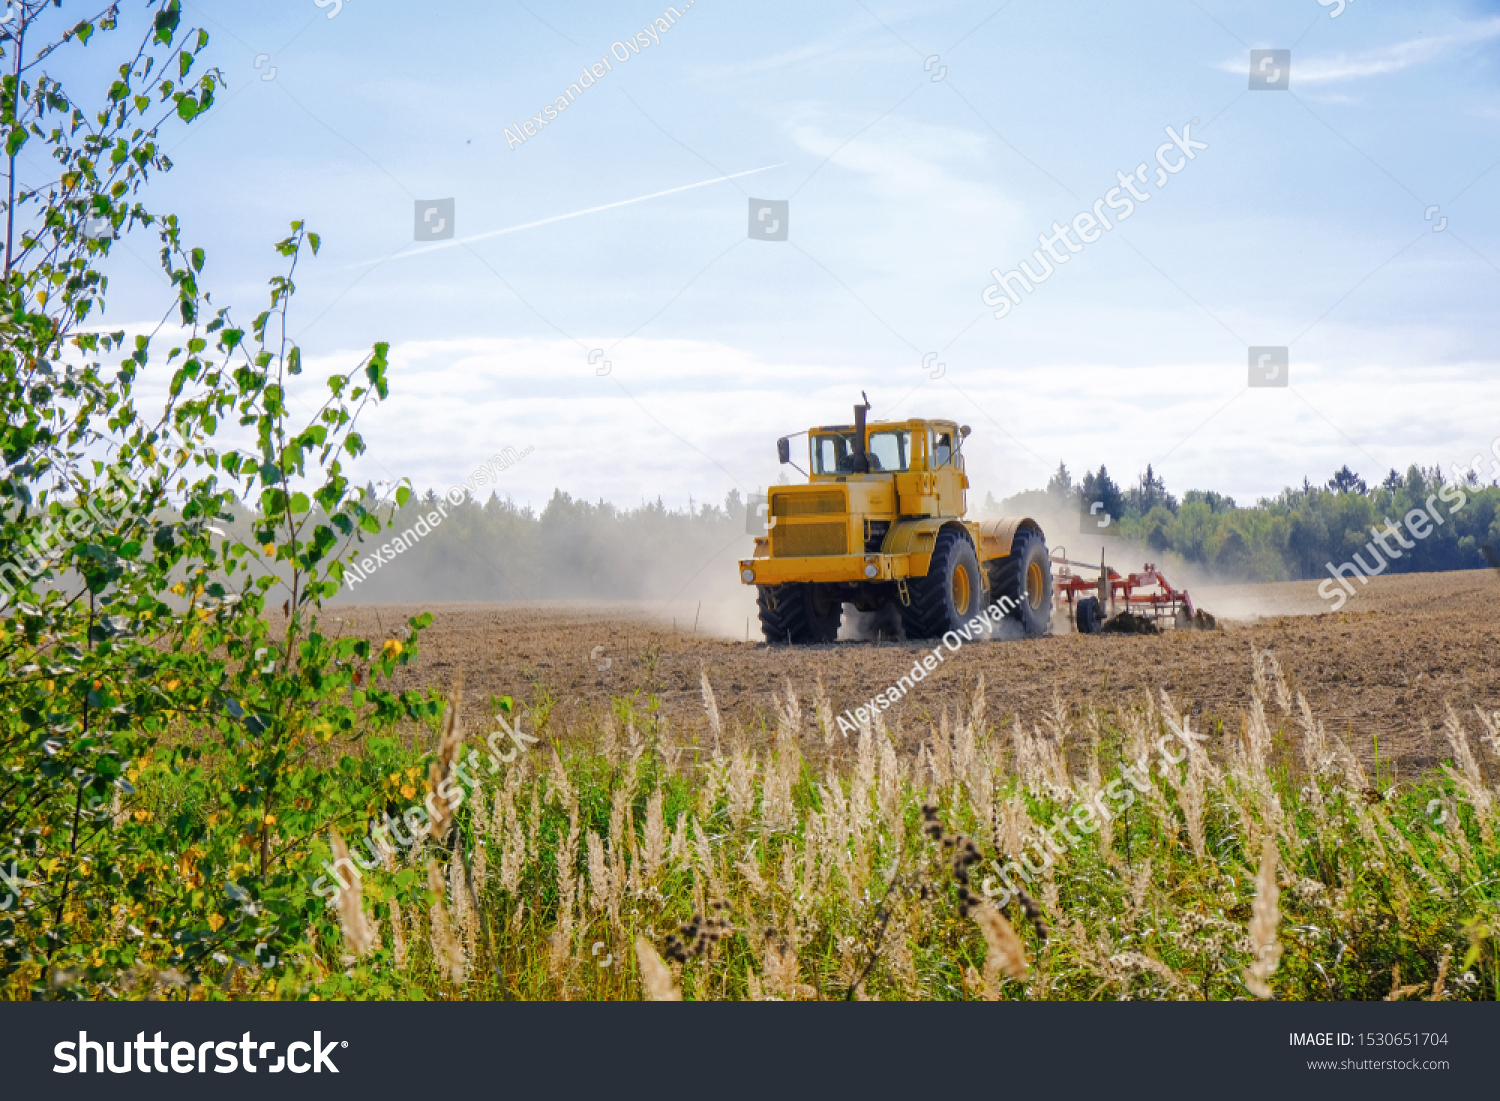 A farm tractor cultivates land after harvesting grain.  #1530651704